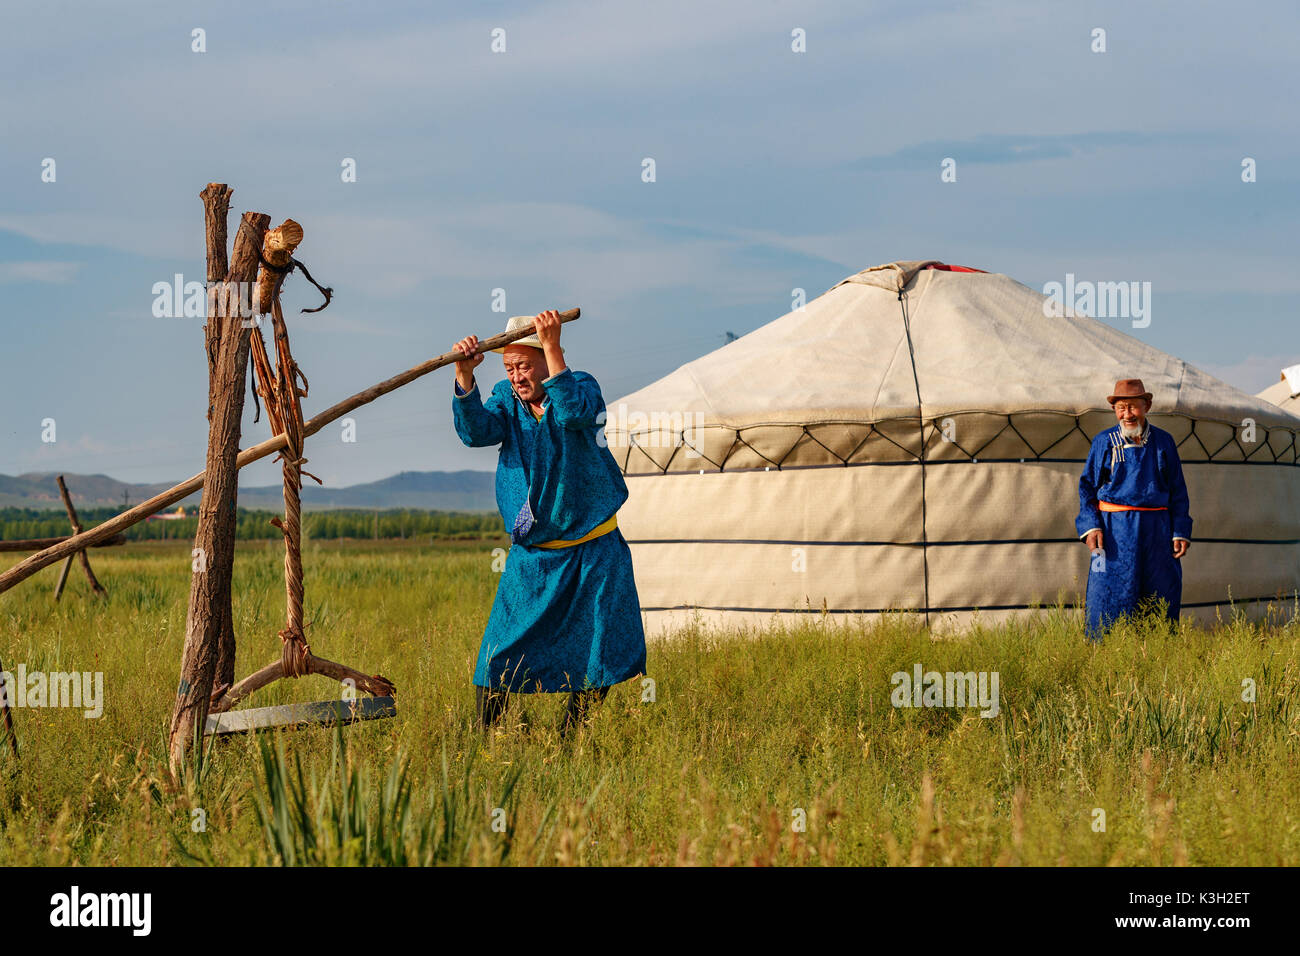 Inner Mongolia, China-July 26, 2017: Traditionally dressed old Mongolian men process the fur of sheep in a traditional way for further leather work. - Stock Image